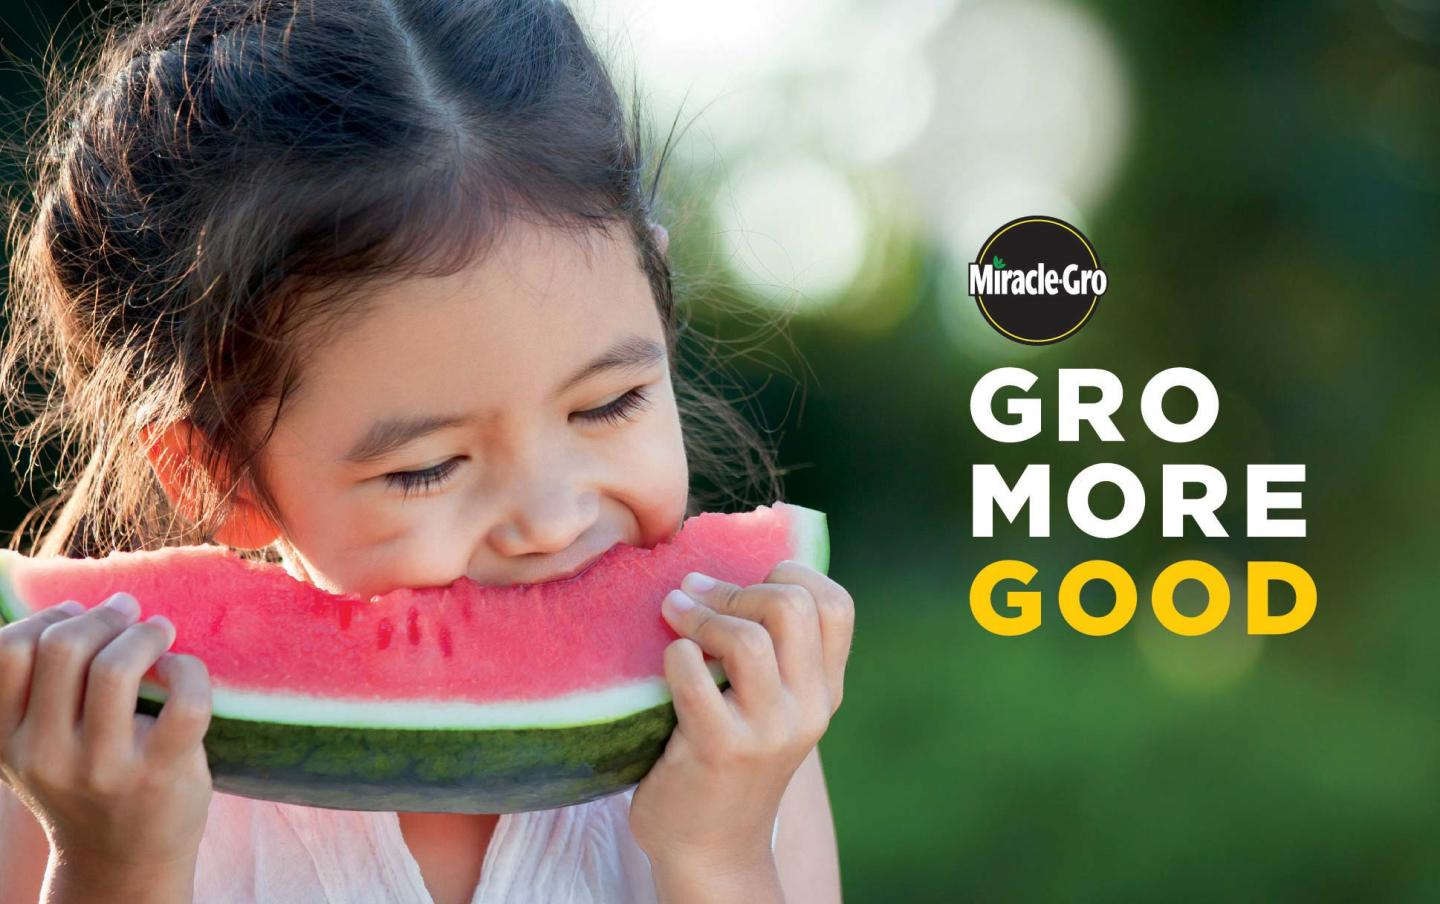 Miracle-Gro Gro More Good